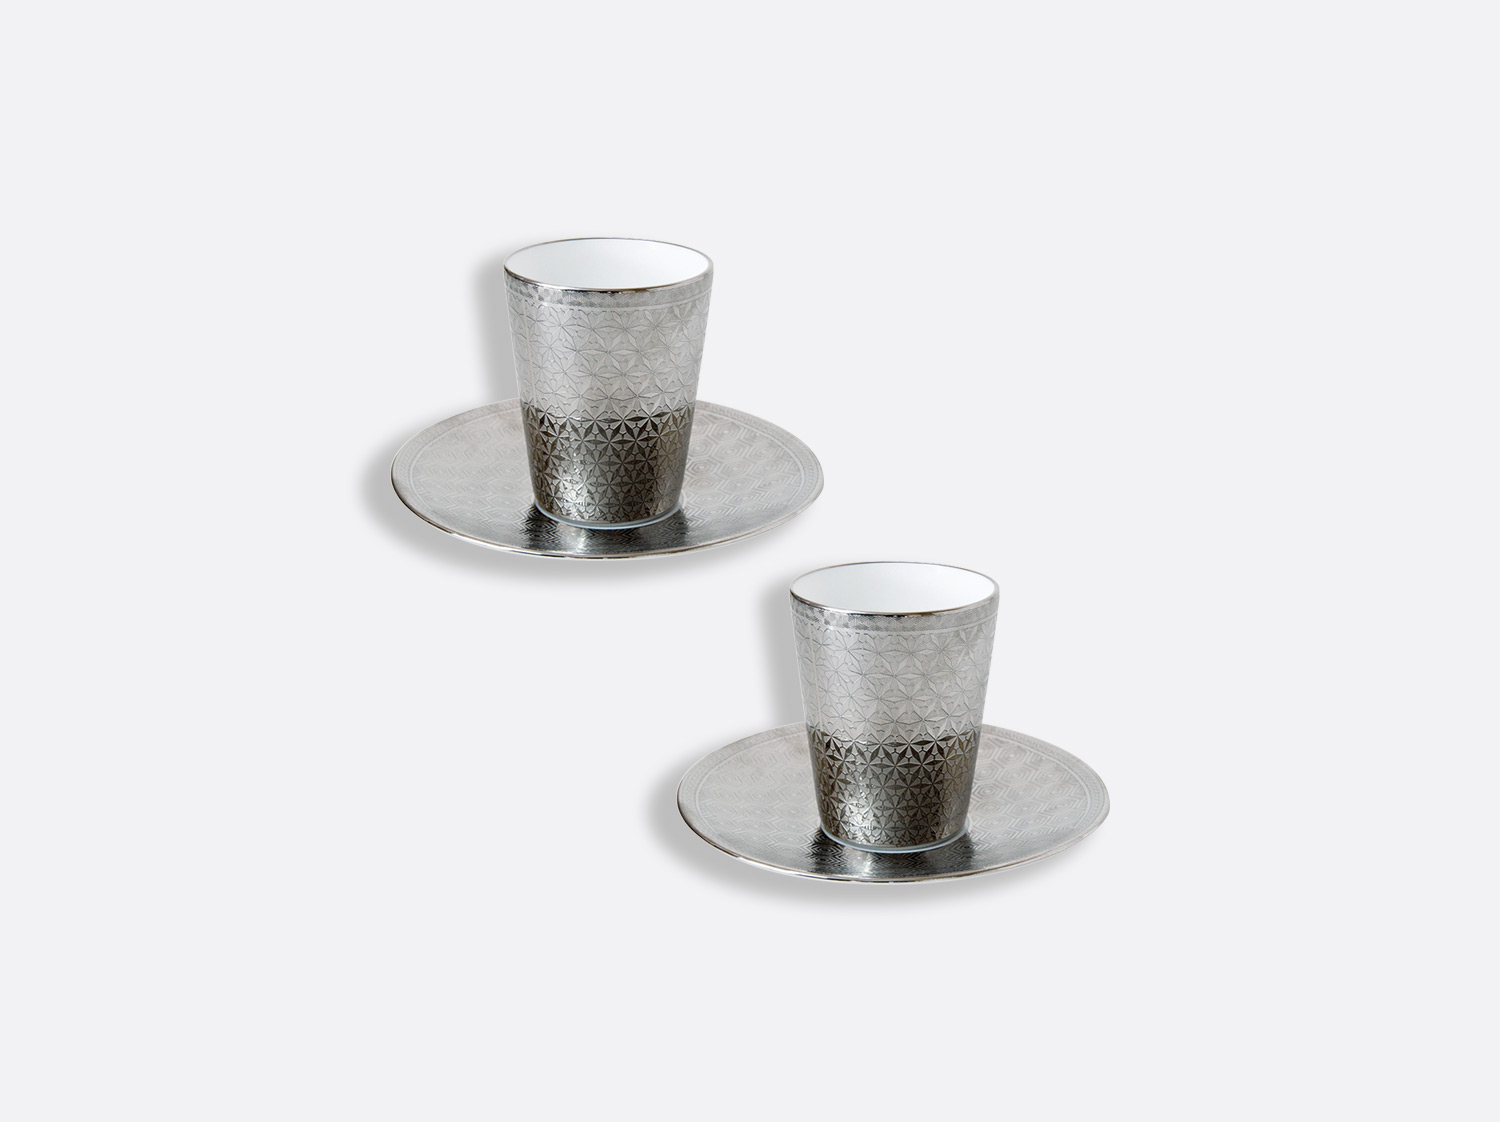 Coffret de 2 tasses et soucoupe platine 7 cl en porcelaine de la collection Divine Bernardaud